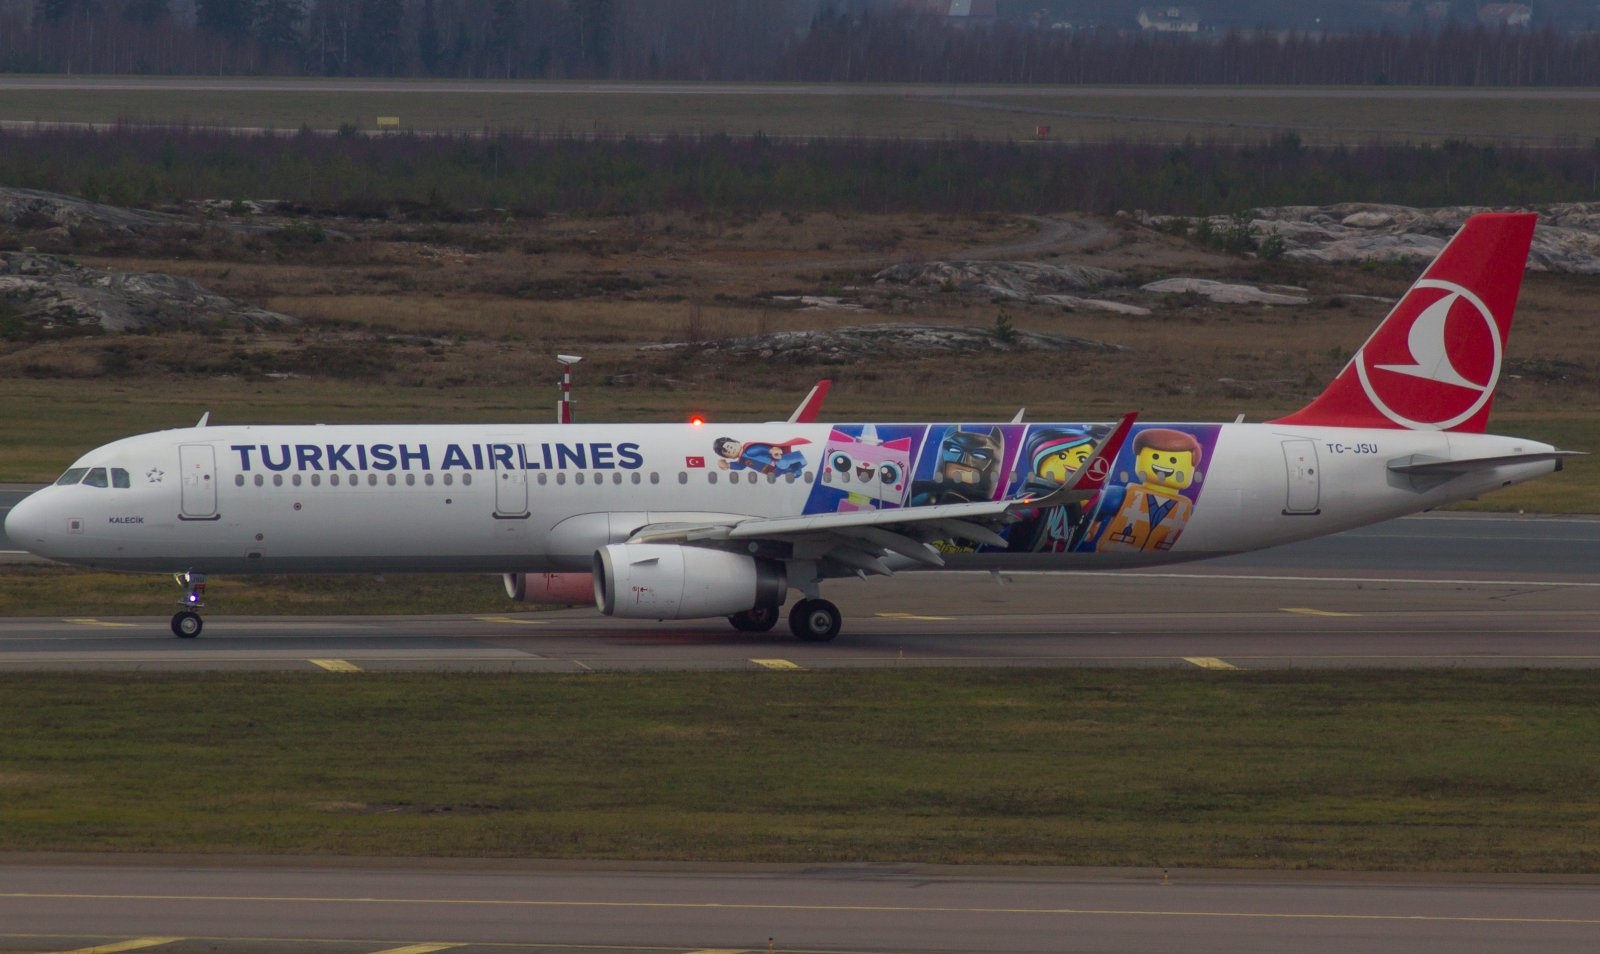 Turkish Airlines ``Lego livery`` TC-JSU